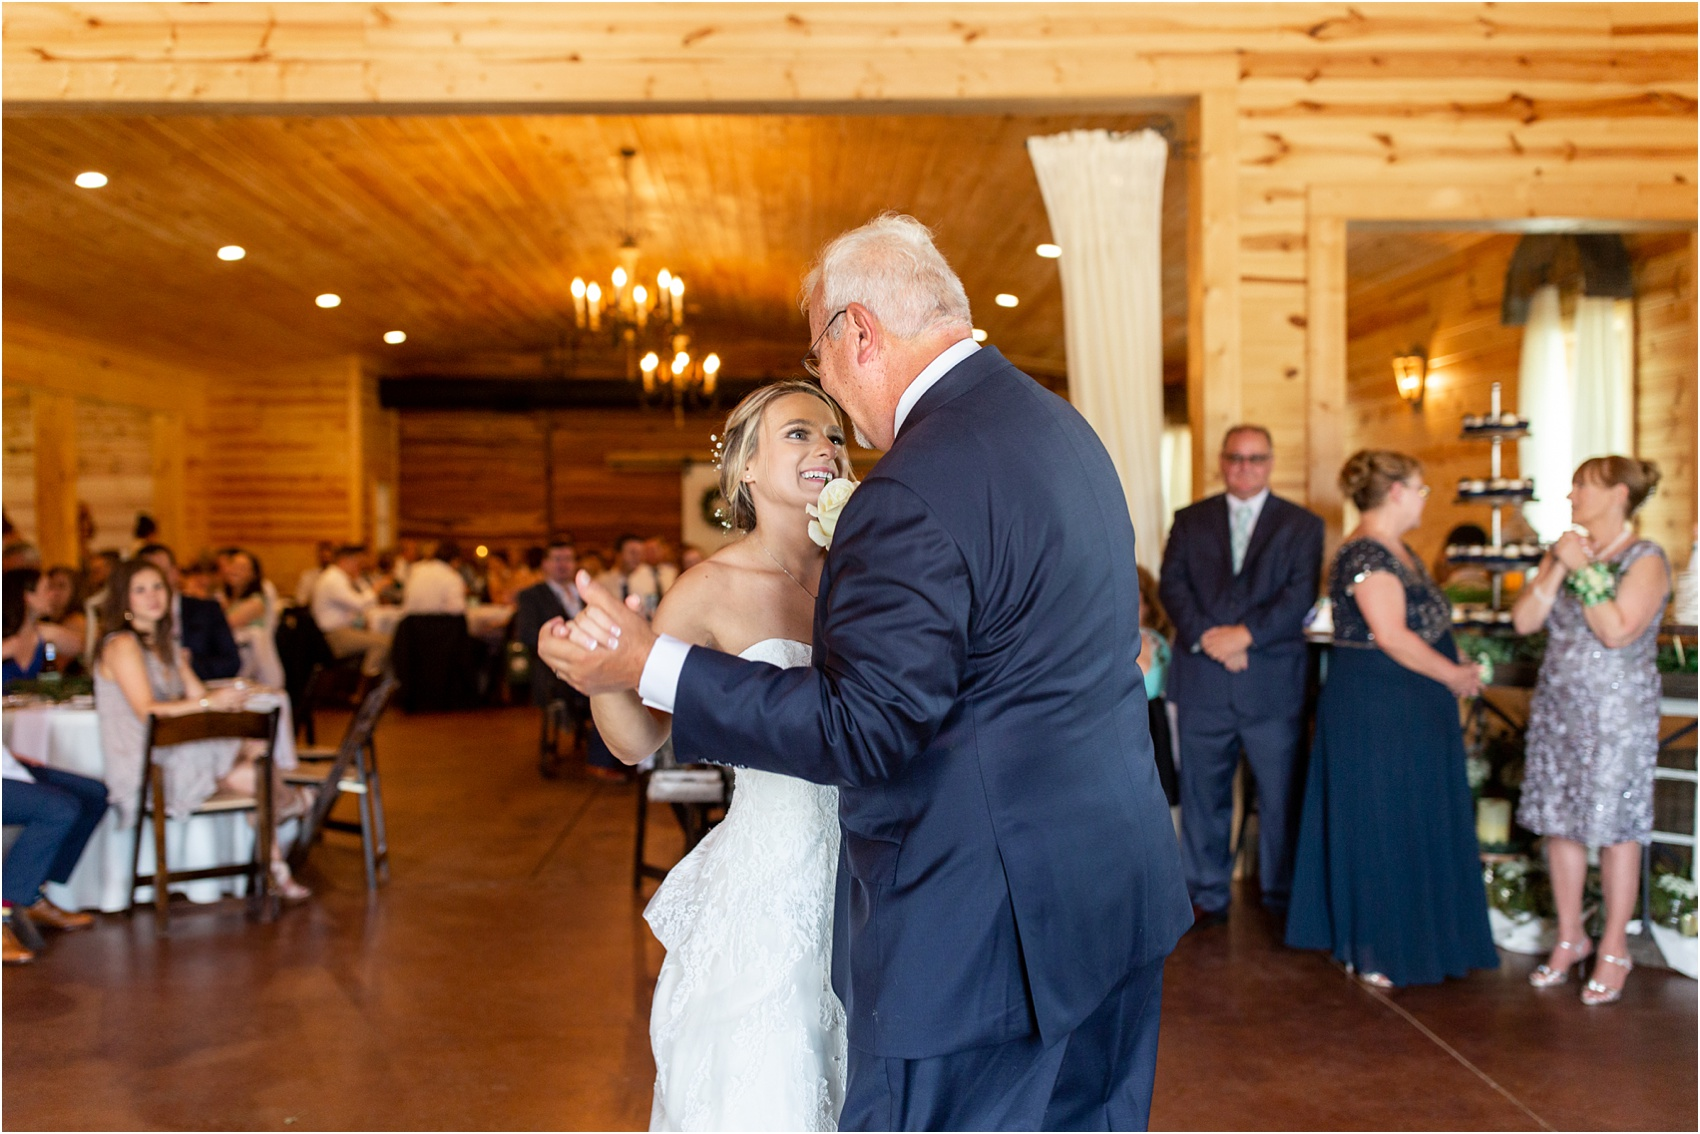 Savannah Eve Photography LLC- Wandolowski-Boyer Wedding-Blog-54.jpg